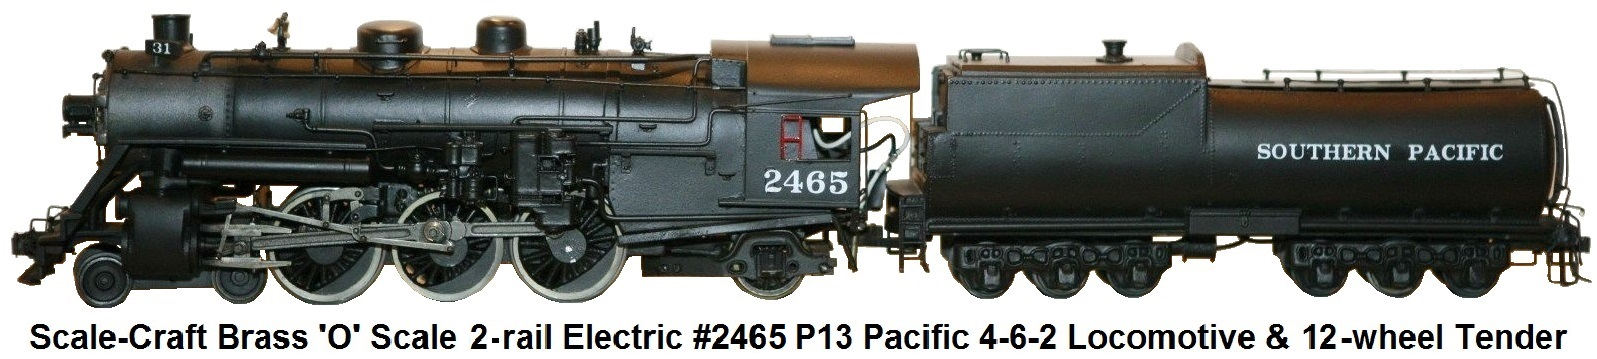 Scale-Craft Brass 'O' Scale P13 Pacific Locomotive #2462 4-6-2 Two-Rail Electric